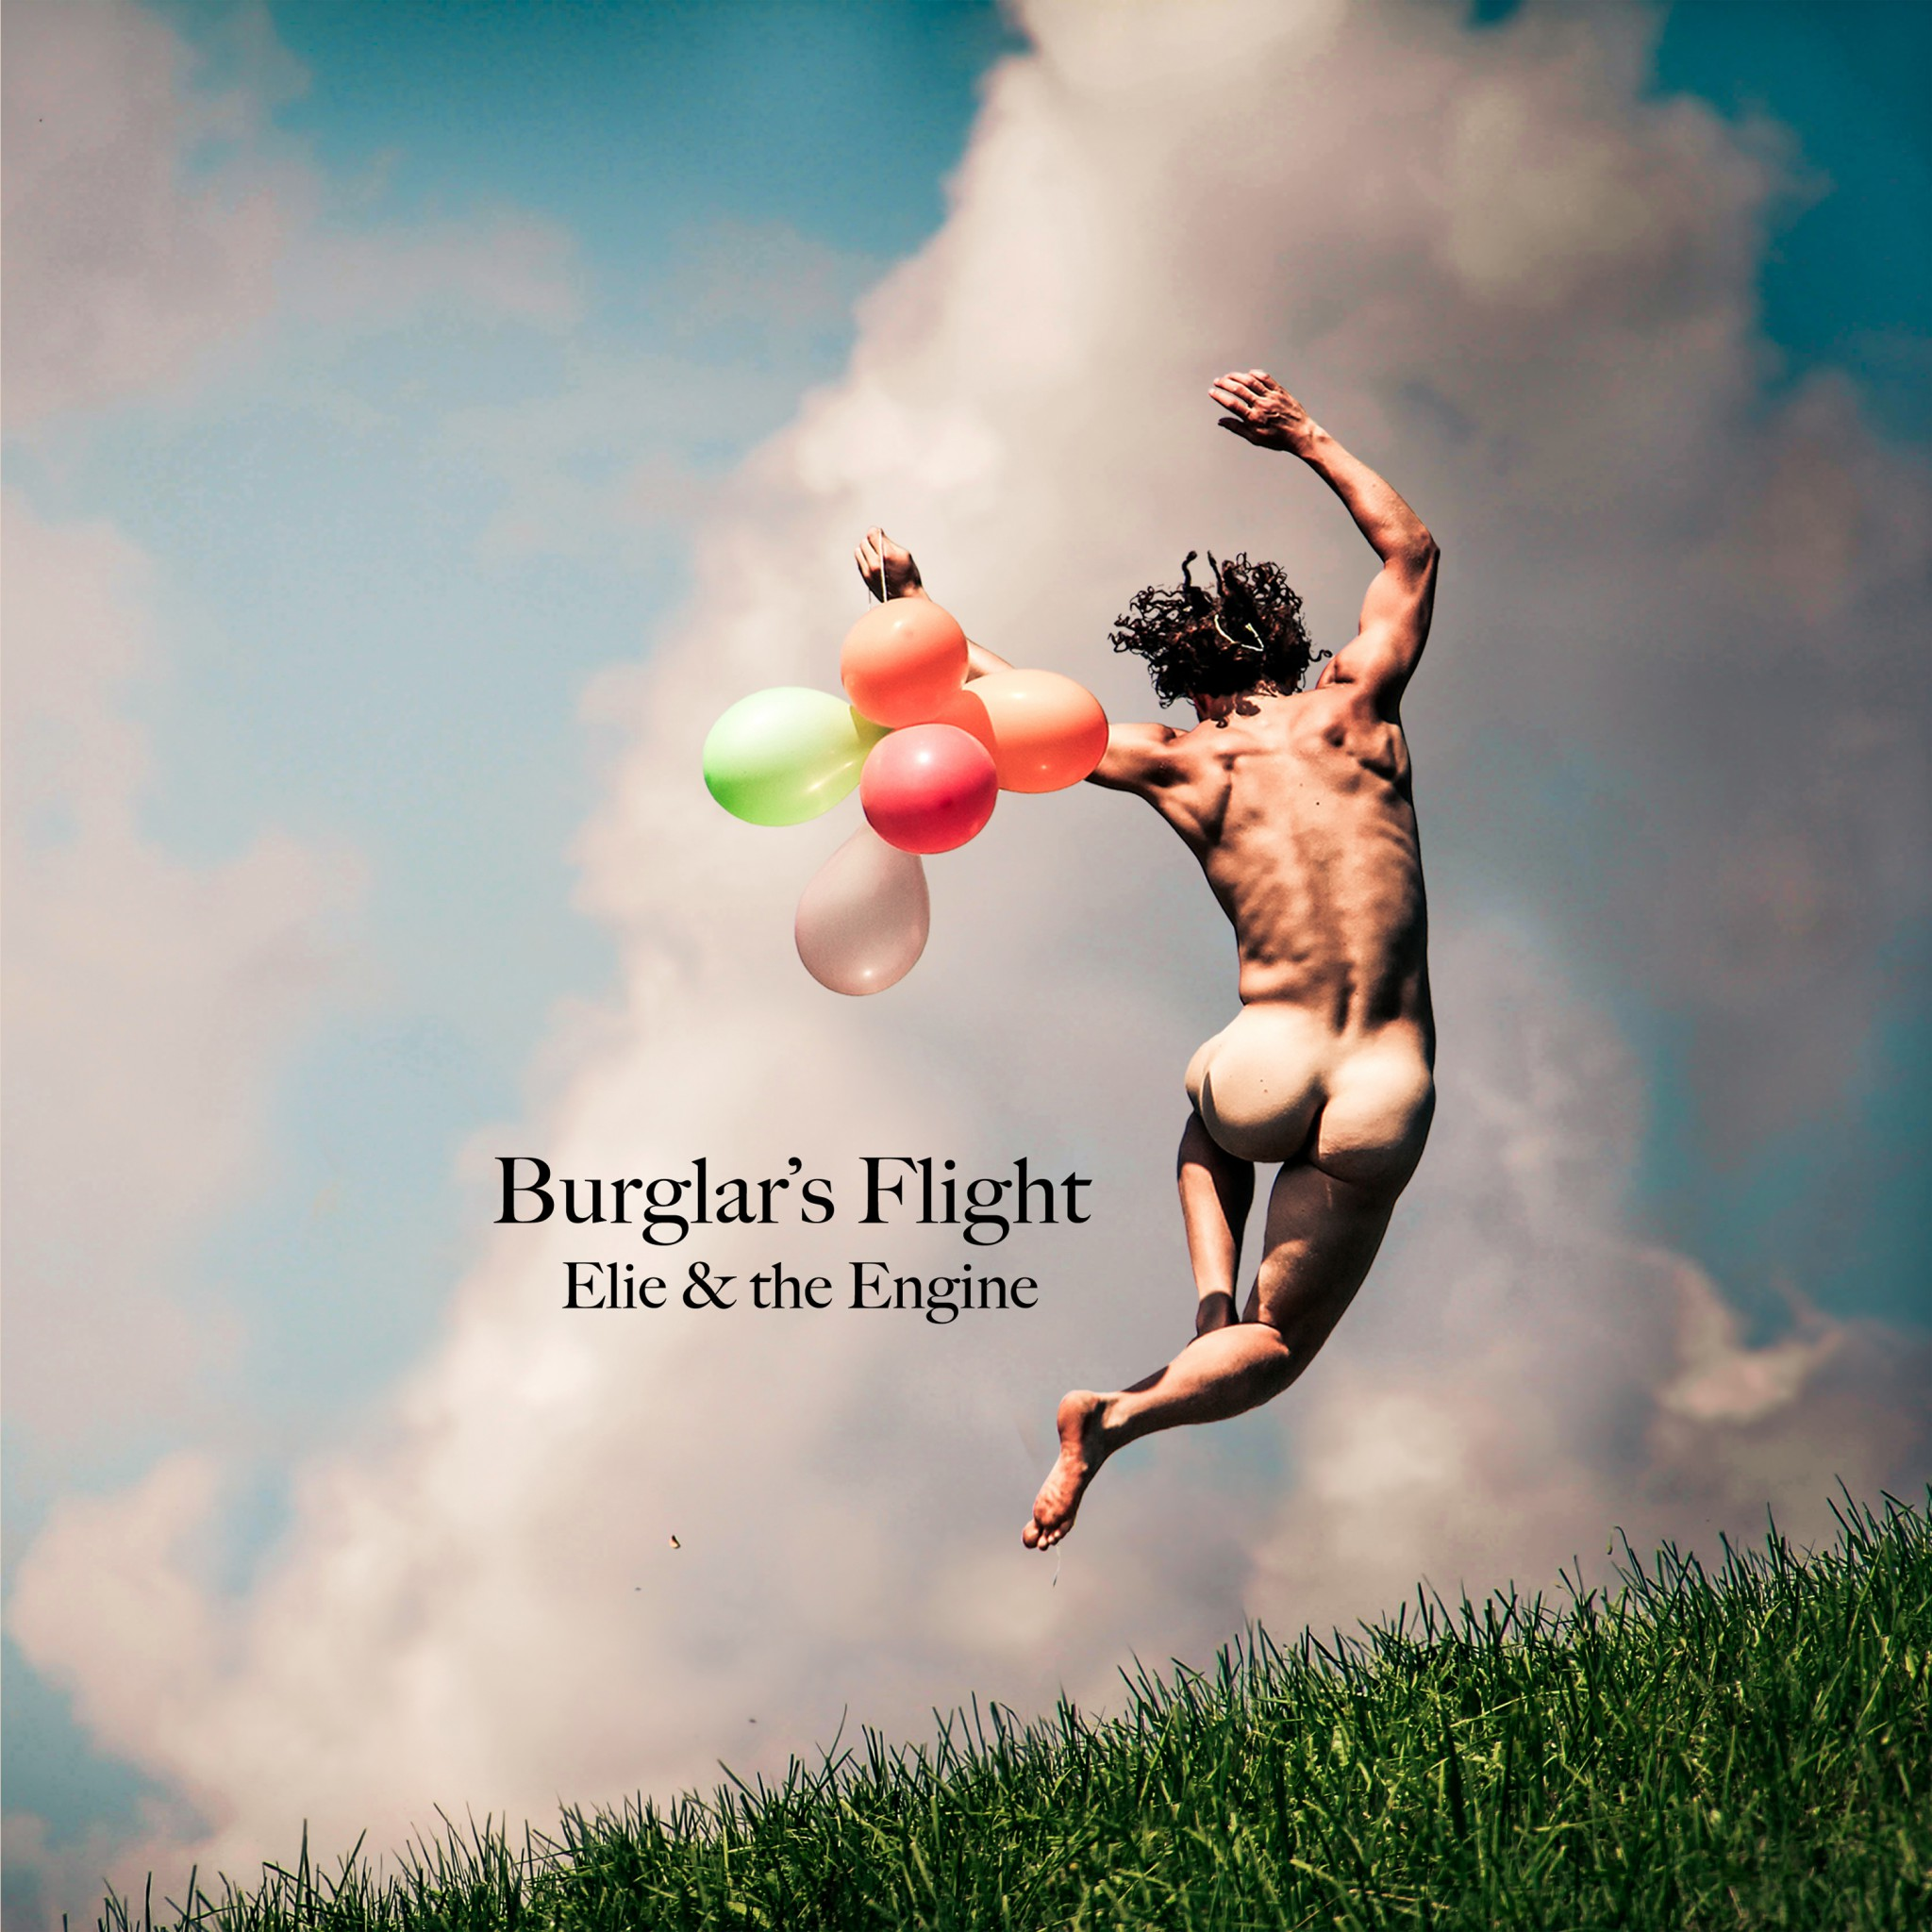 Burglar's Flight - Cover art